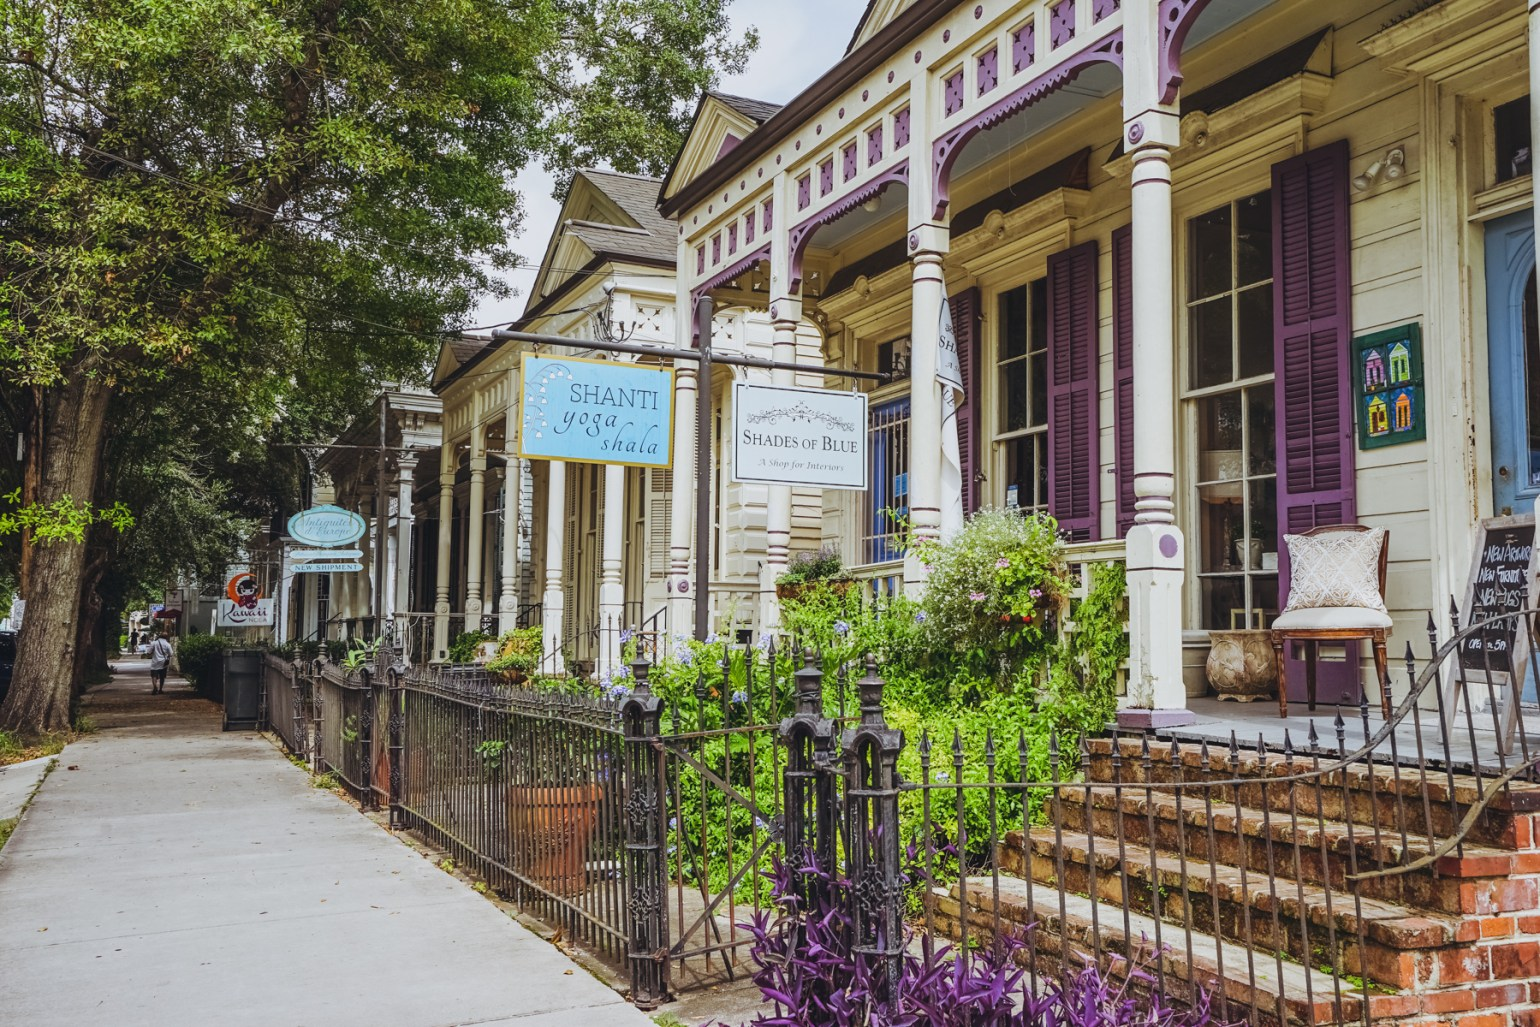 While enjoying all this shopping and food on Magazine Street, take a look at the architecture! Rows of shotguns (some still residences, many converted into retail), brick and stucco corner stores with balconies, and enjoy the shade of monumental live oak trees that give Magazine Street its character and continuity throughout the many miles and neighborhoods it encompasses.